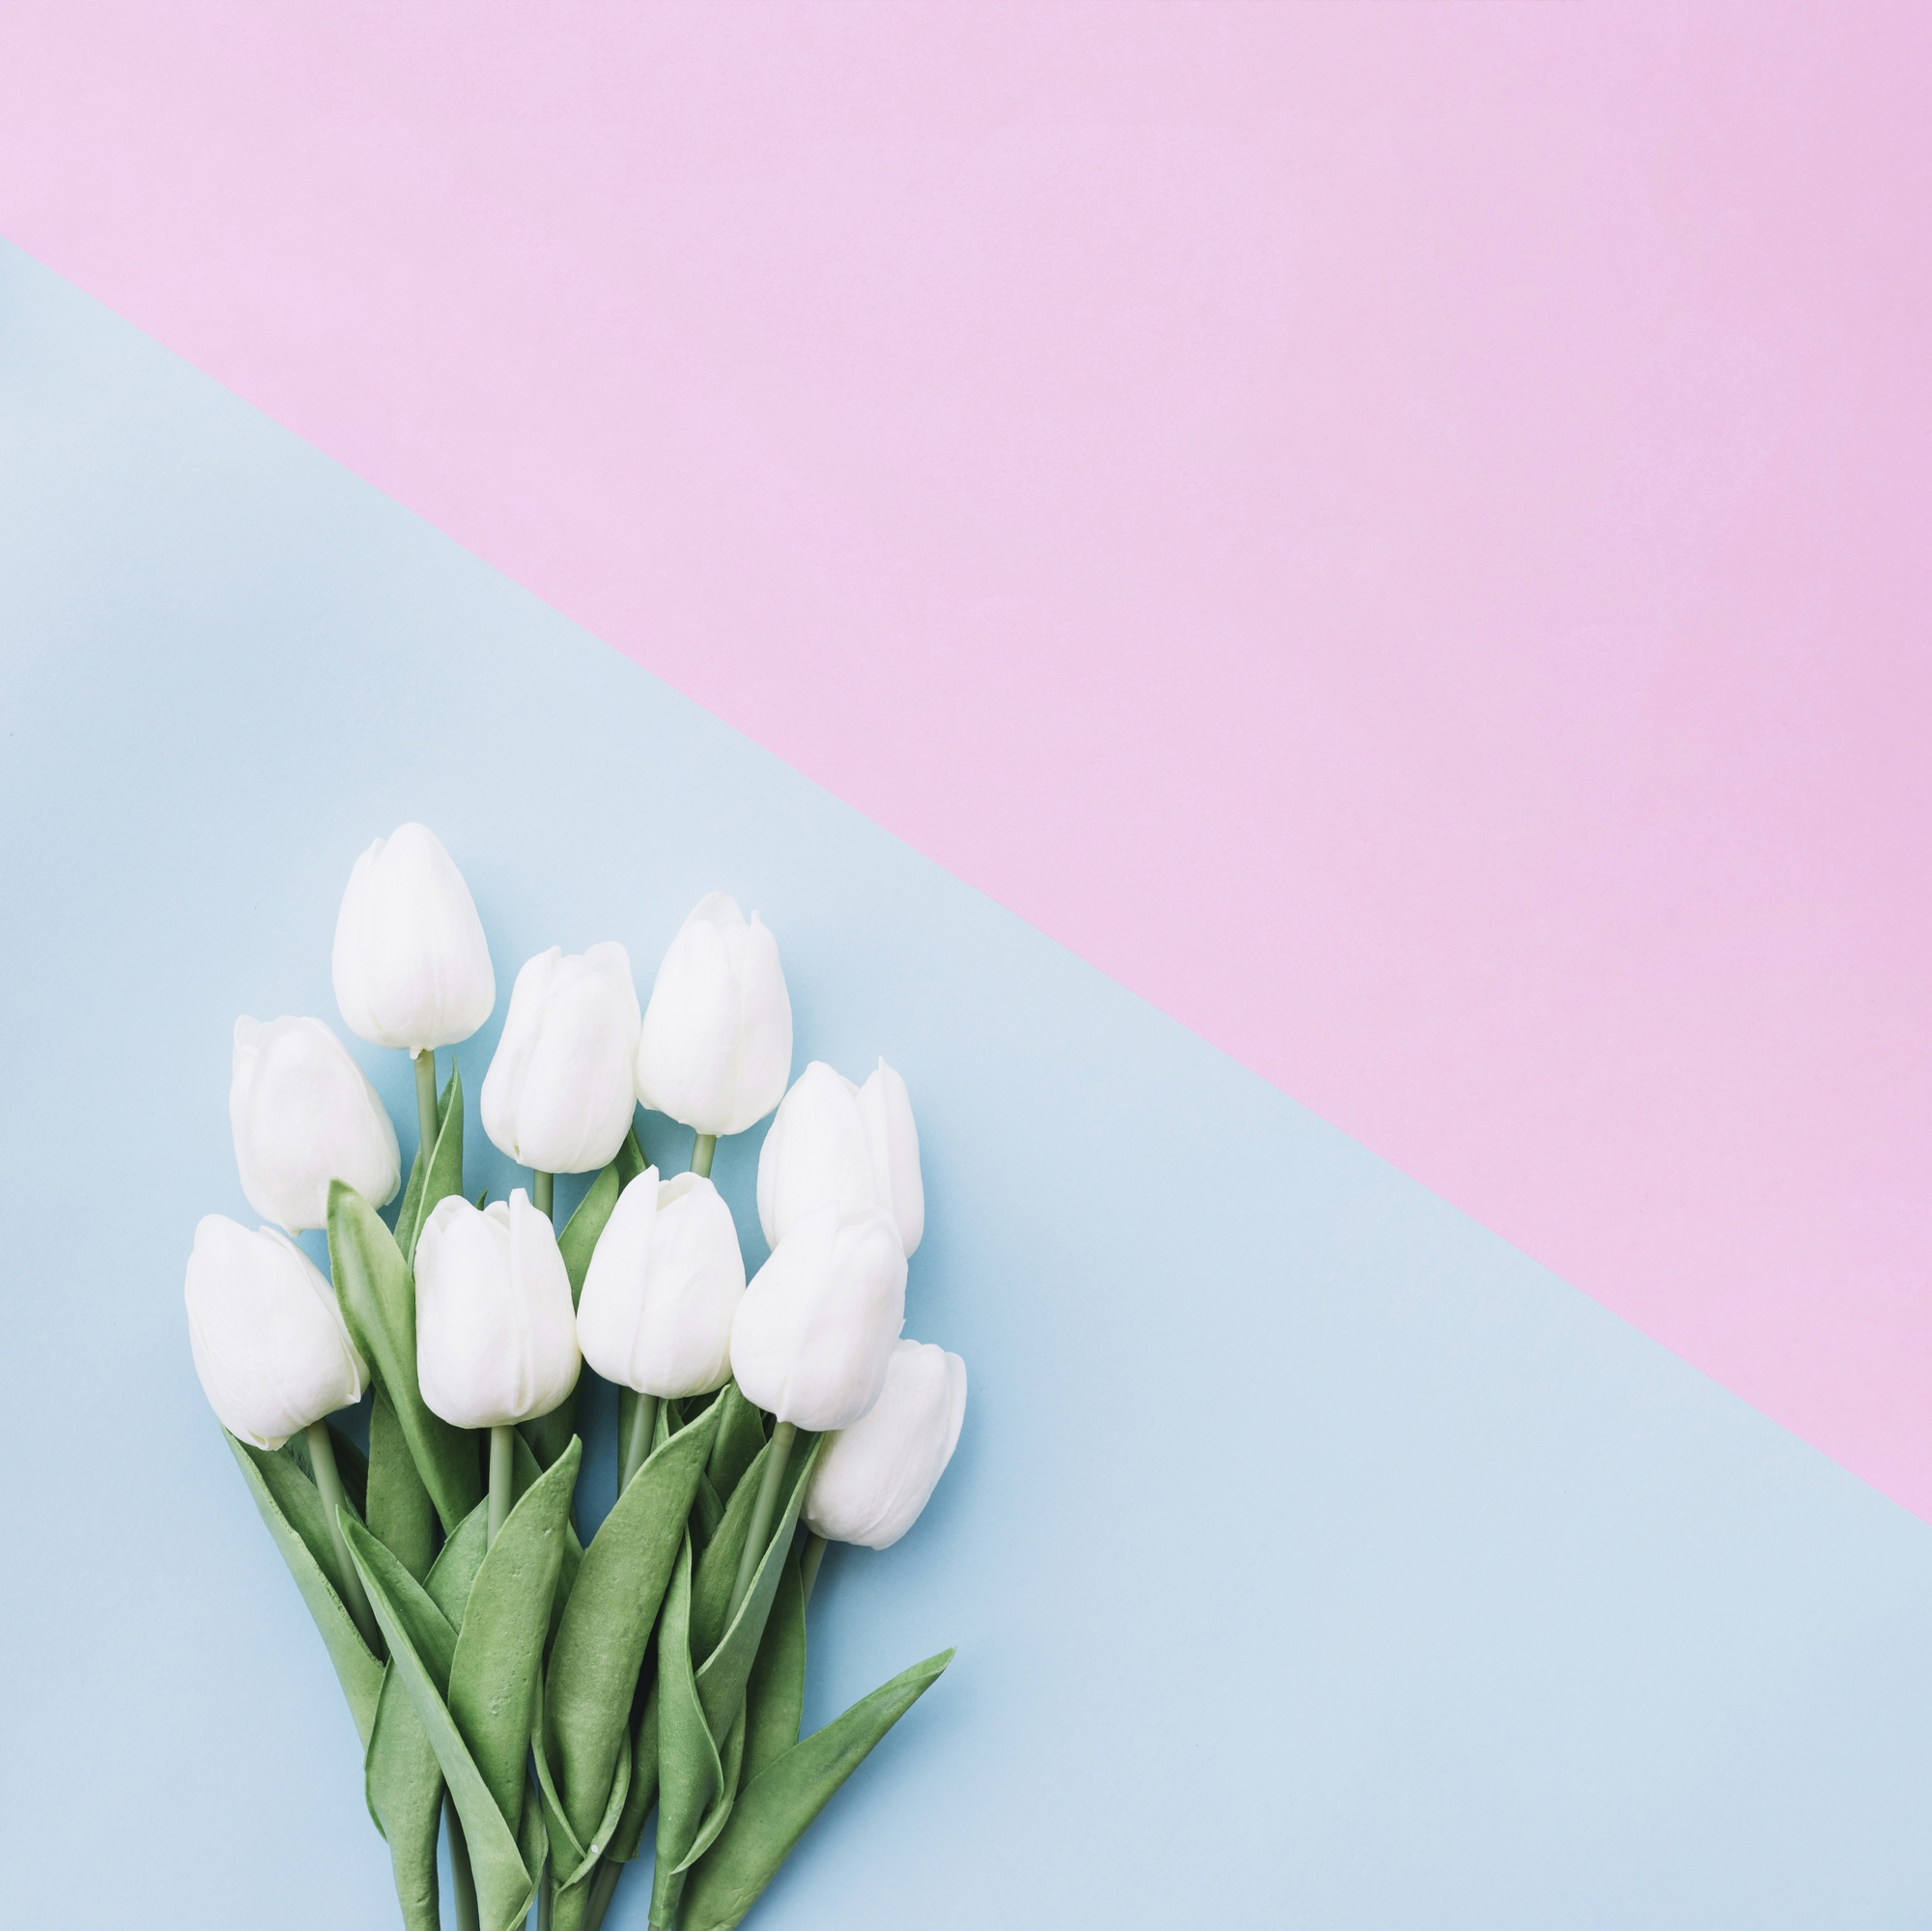 Flat lay of pretty tulips bouquet on blue and pink background with space on top